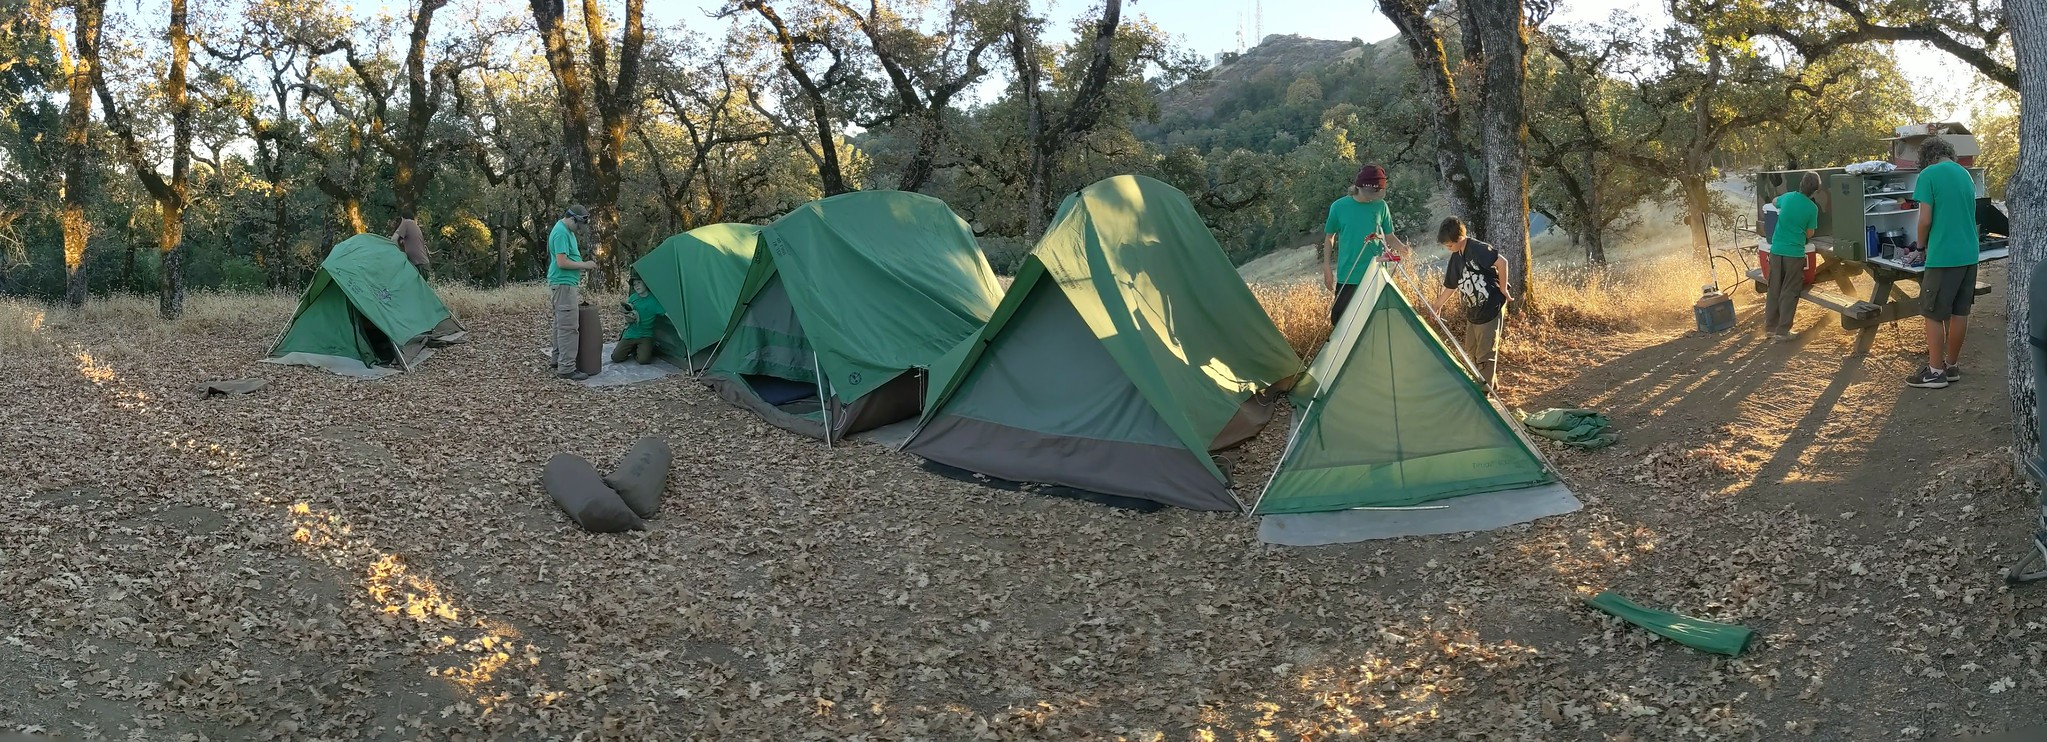 Troop 633's Freemont Peak Camp